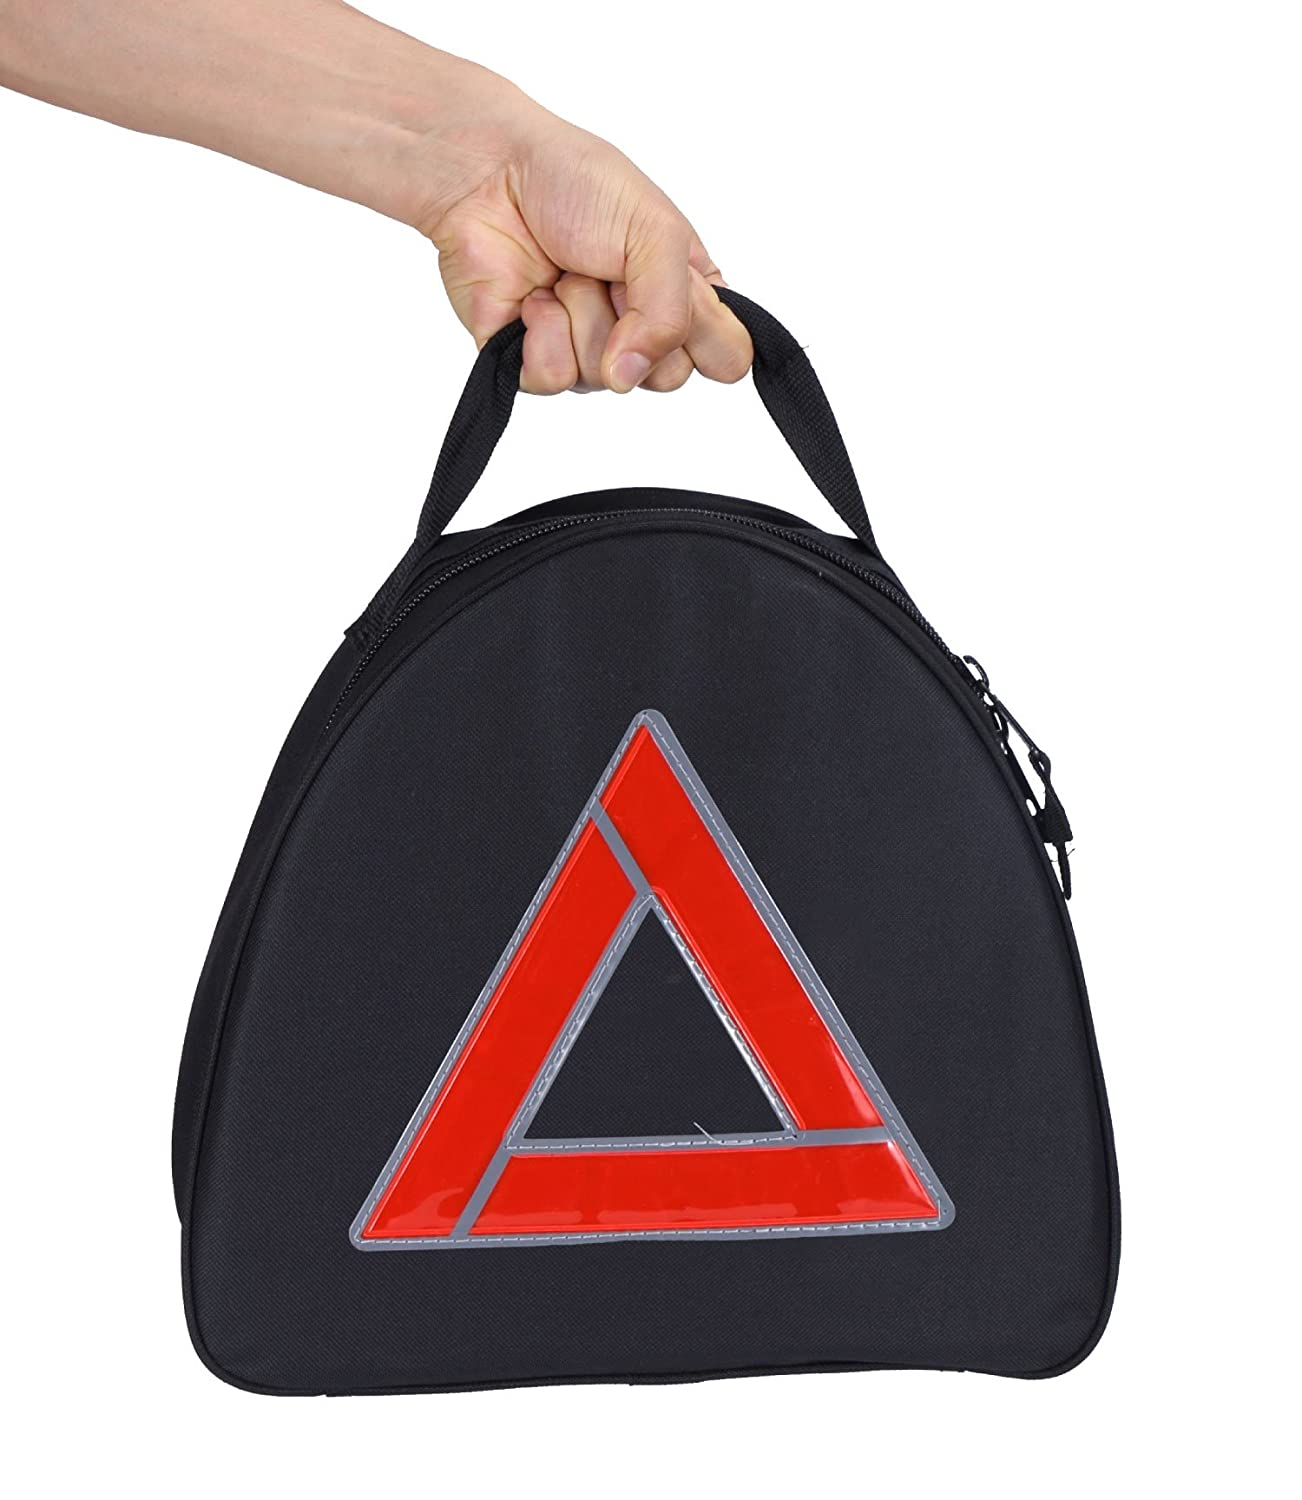 Thrive Roadside Assistance Auto Emergency Kit + First Aid Kit – Triangle Bag - Contains Jumper Cables, tools, Reflective Safety Triangle and more. Ideal winter accessory for your car, truck, camper